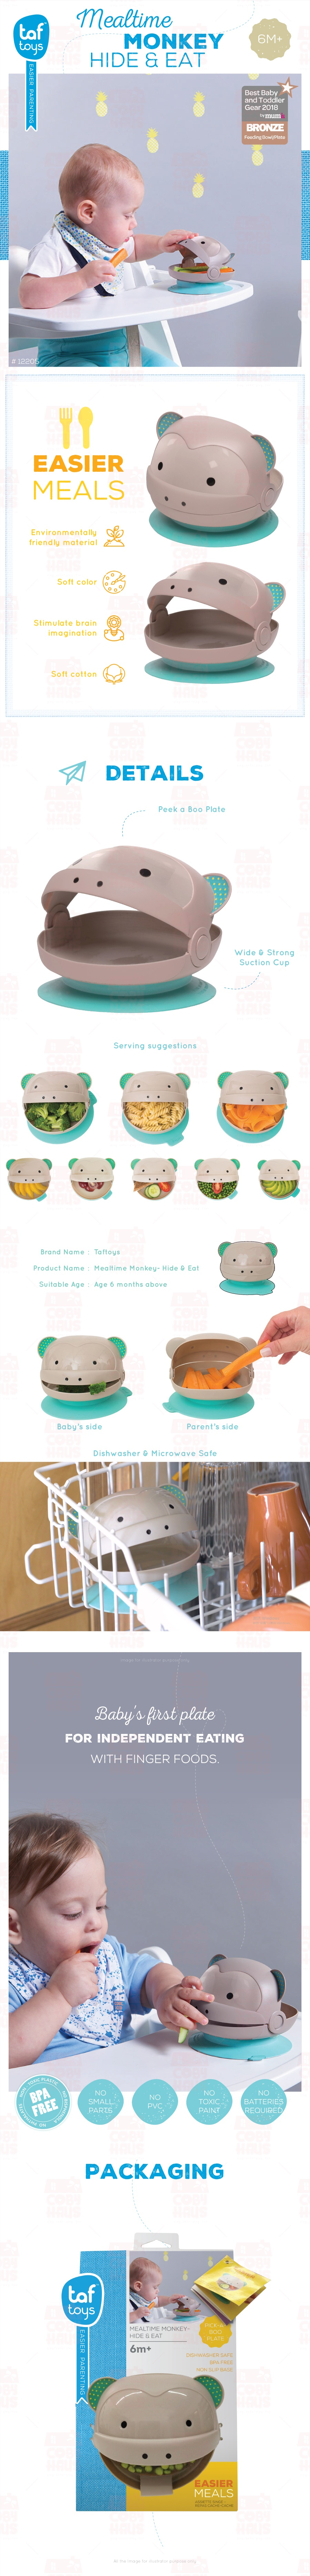 Taf Toys Meal Time Monkey